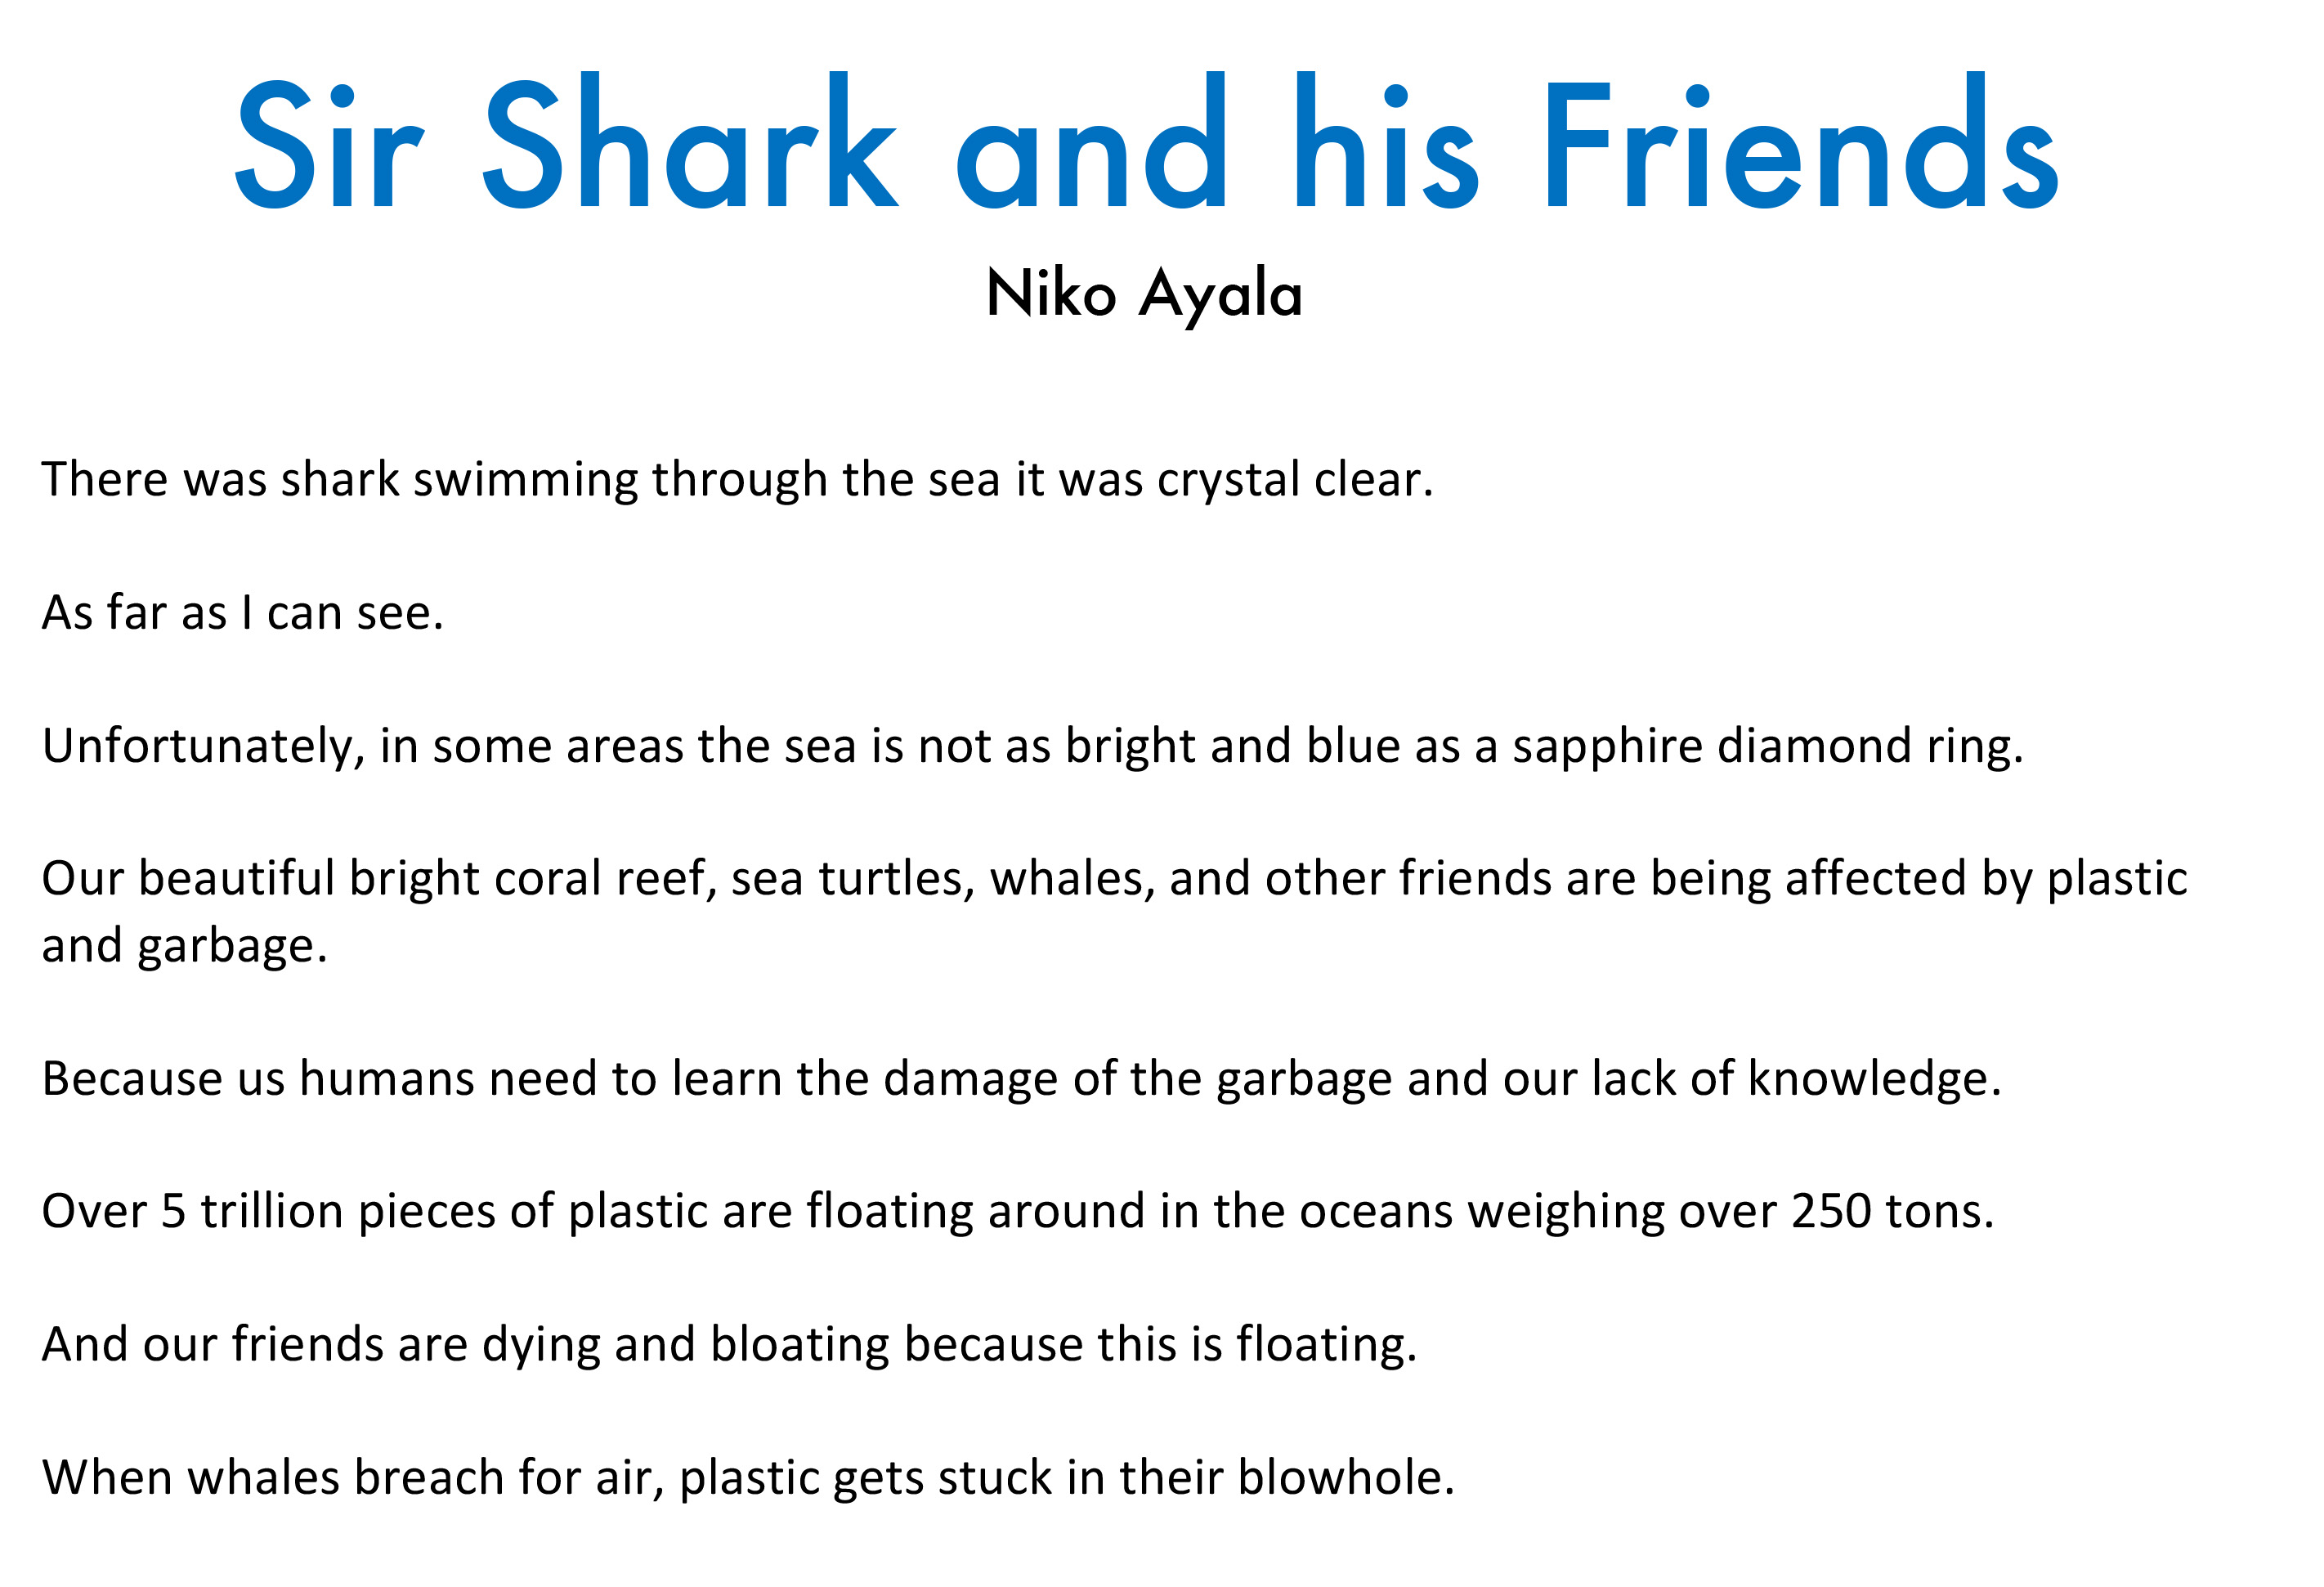 Niko Ayala - Sir Shark and  his Friends